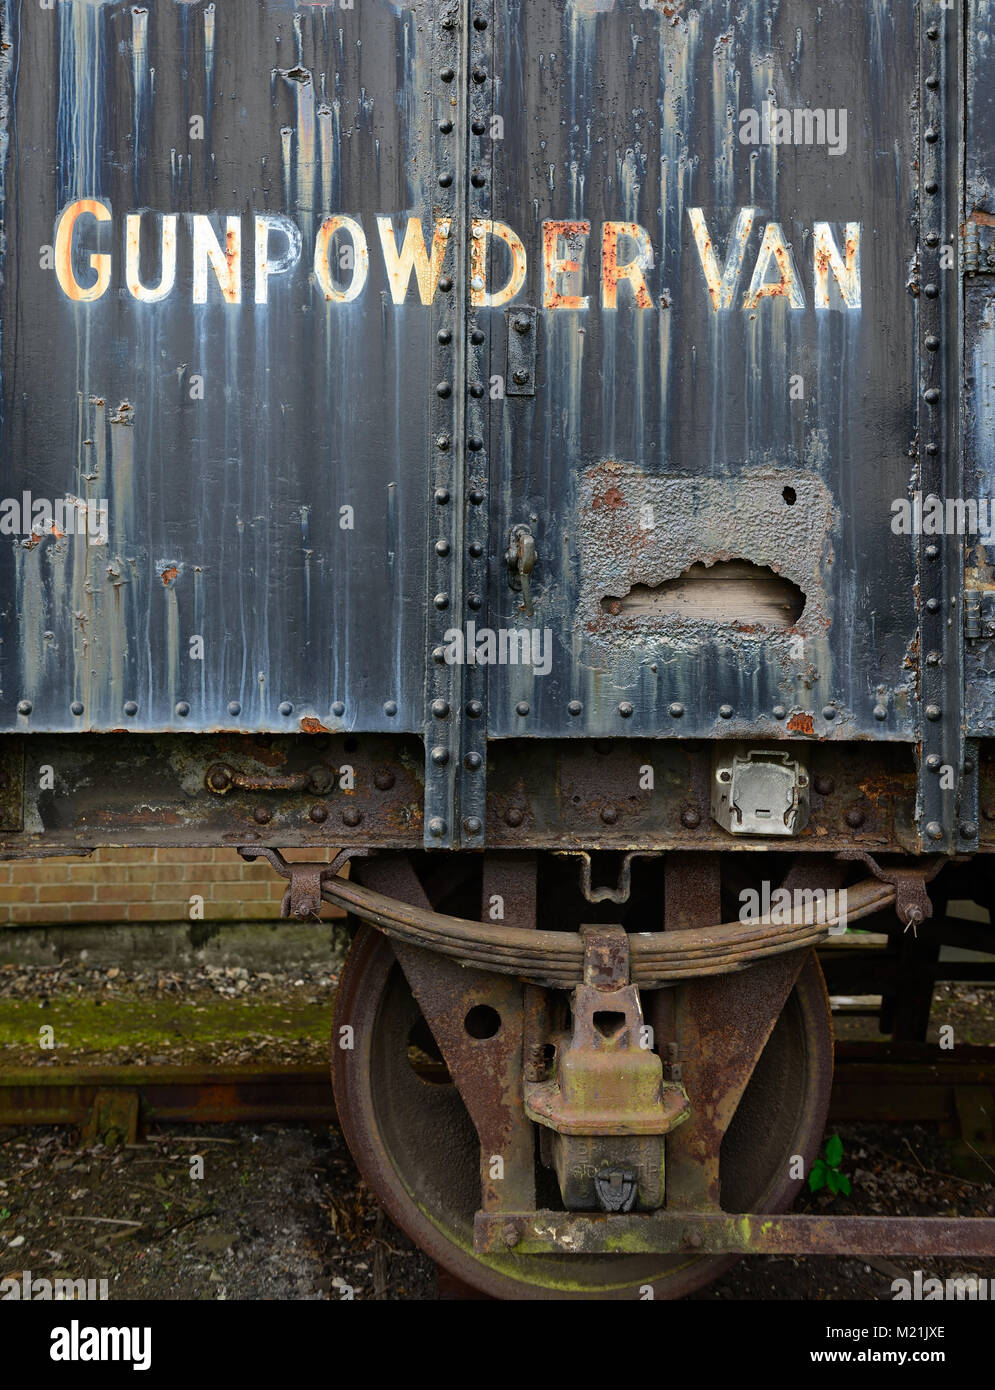 A rusty gunpowder van in need of restoration at the Didcot Railway Centre. - Stock Image